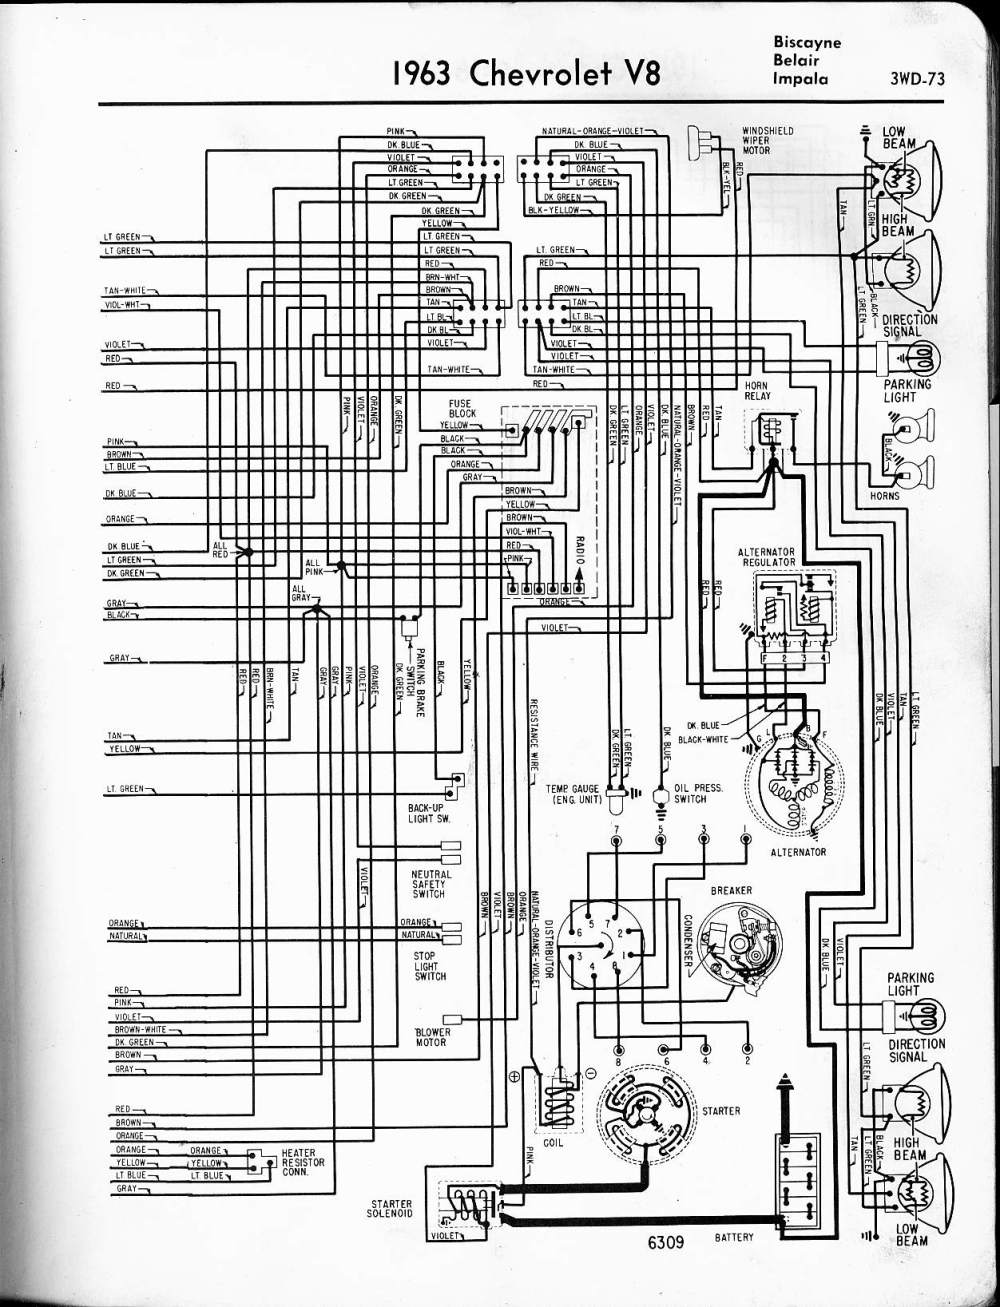 medium resolution of 1963 v8 biscayne belair impala right 57 65 chevy wiring diagrams